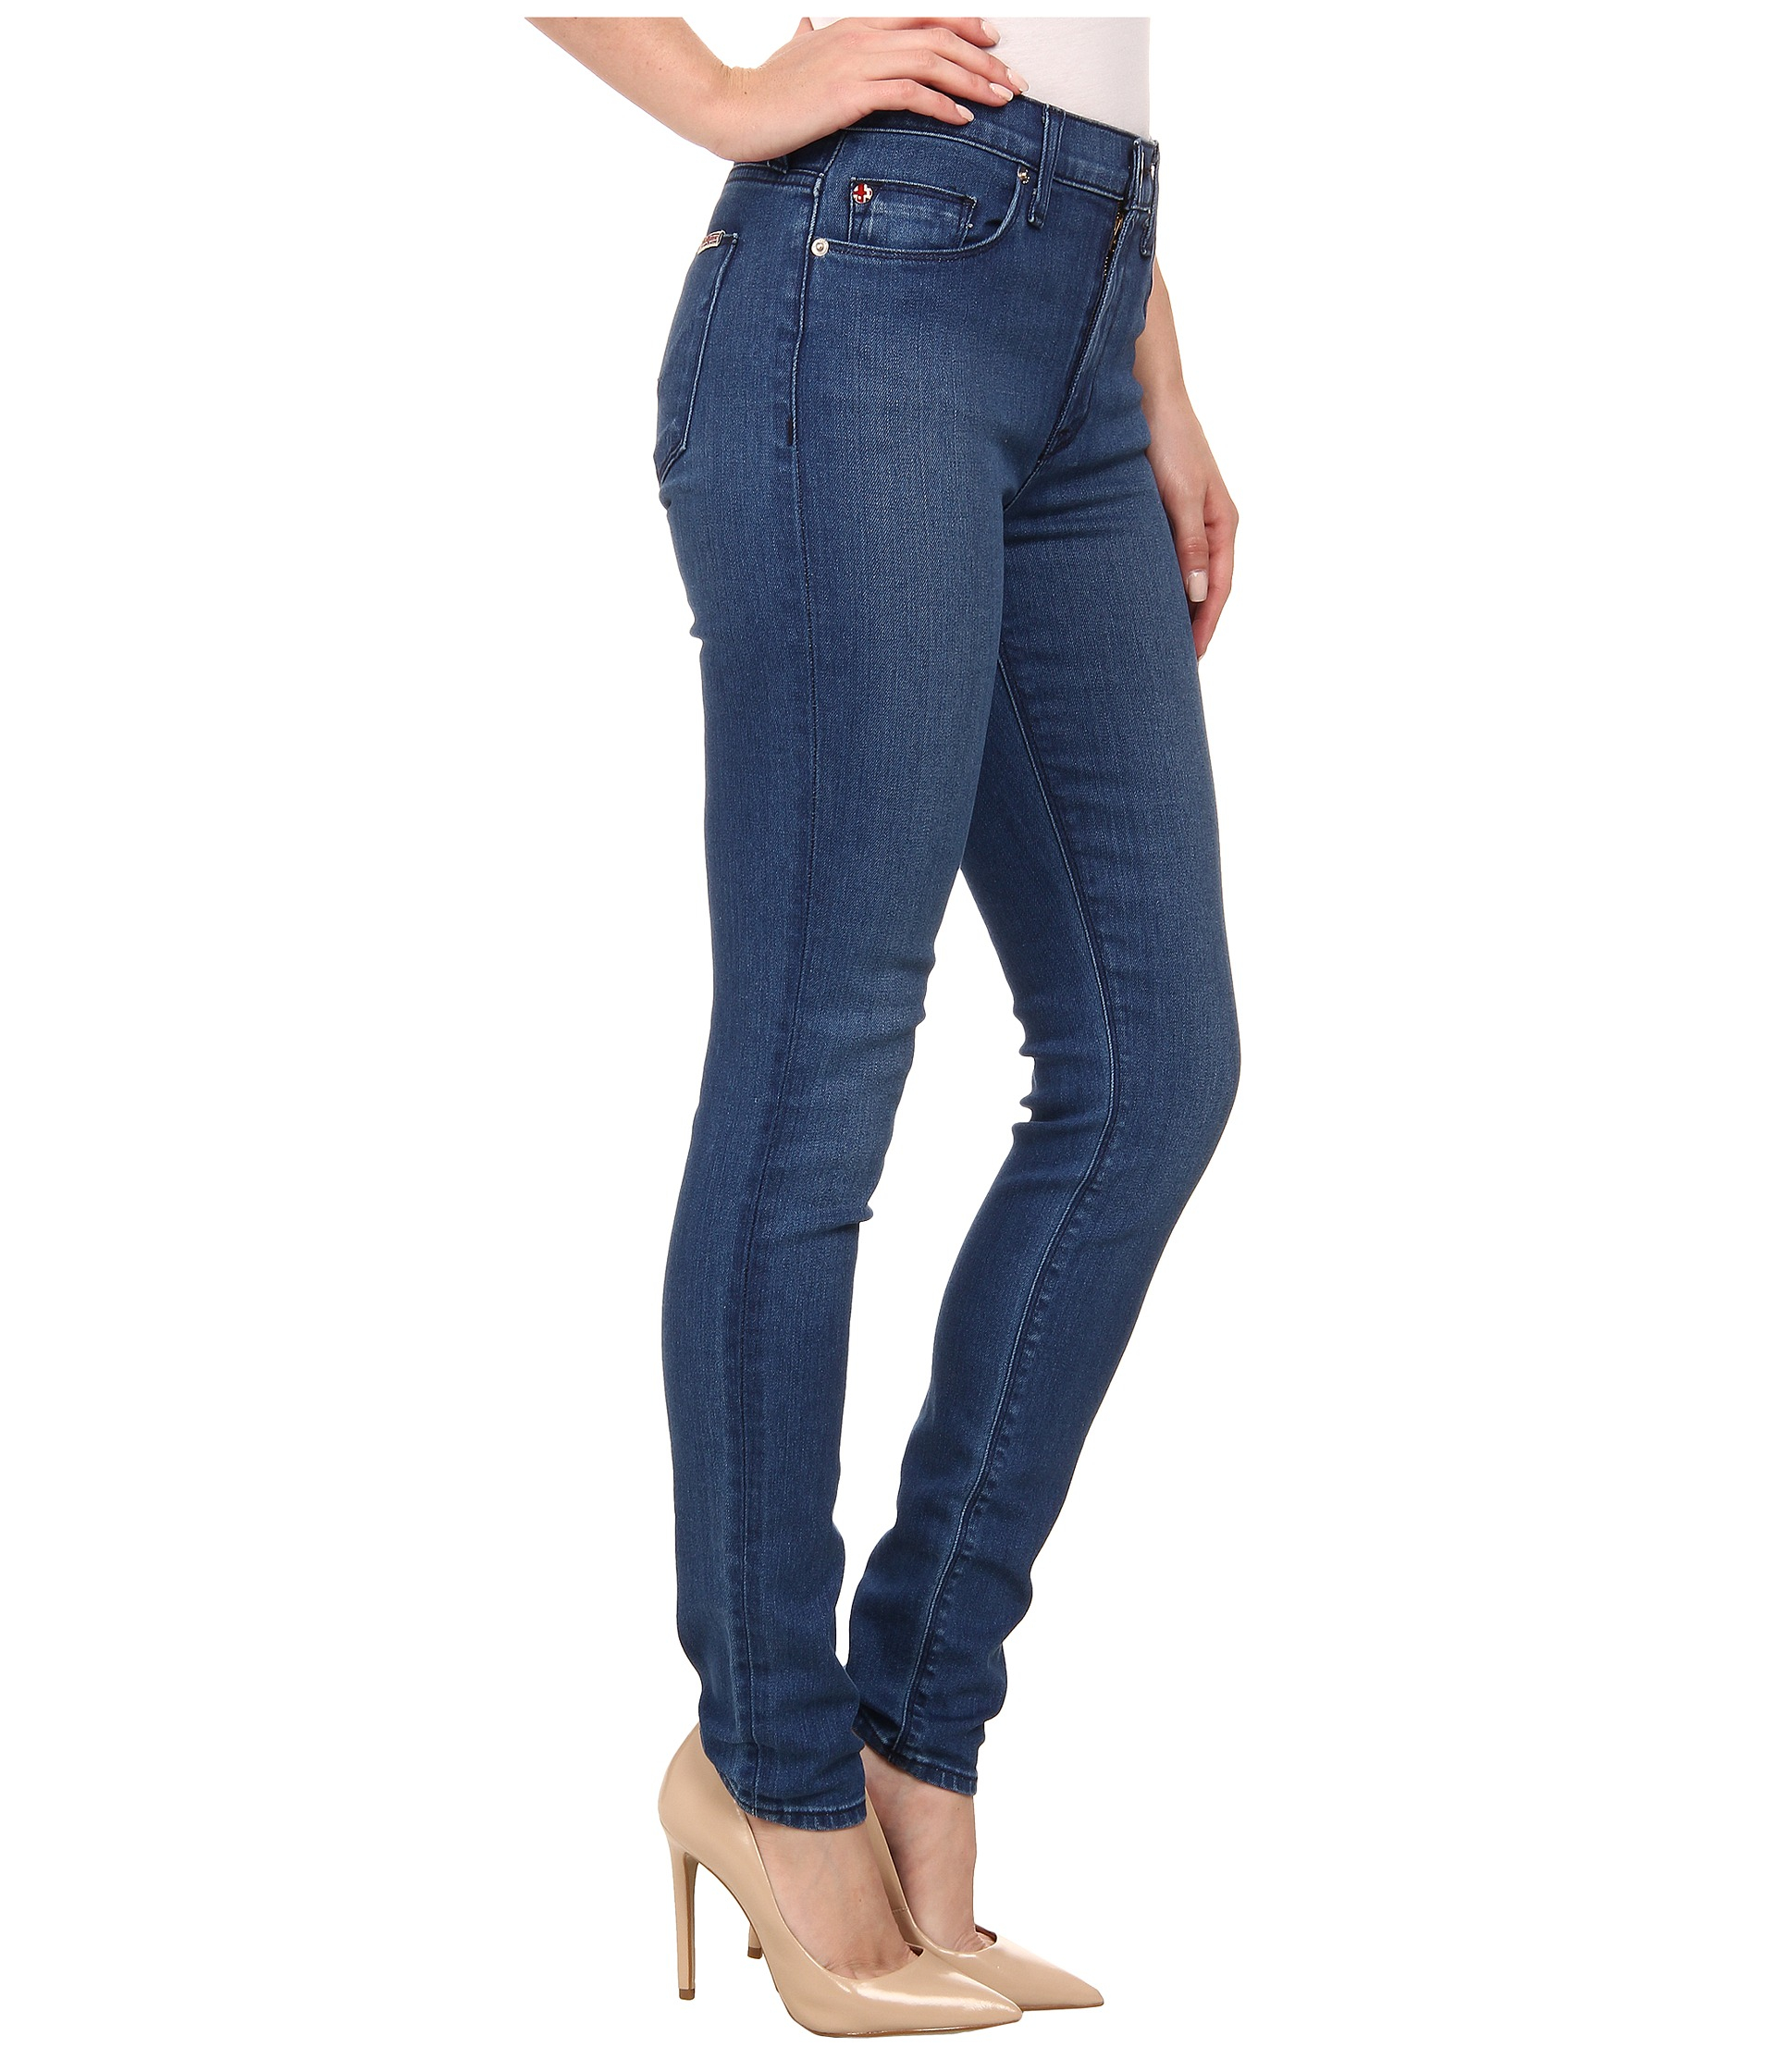 Super High Waisted Skinny Jeans with Back Pocket Details. Skinny Jeans for Women,EASTDAMO High Waisted Slim Fit Stretch Black Jeans Leggings. by EASTDAMO. £ - £ Prime. Eligible for FREE UK Delivery. Some sizes/colours are Prime eligible. out of 5 stars